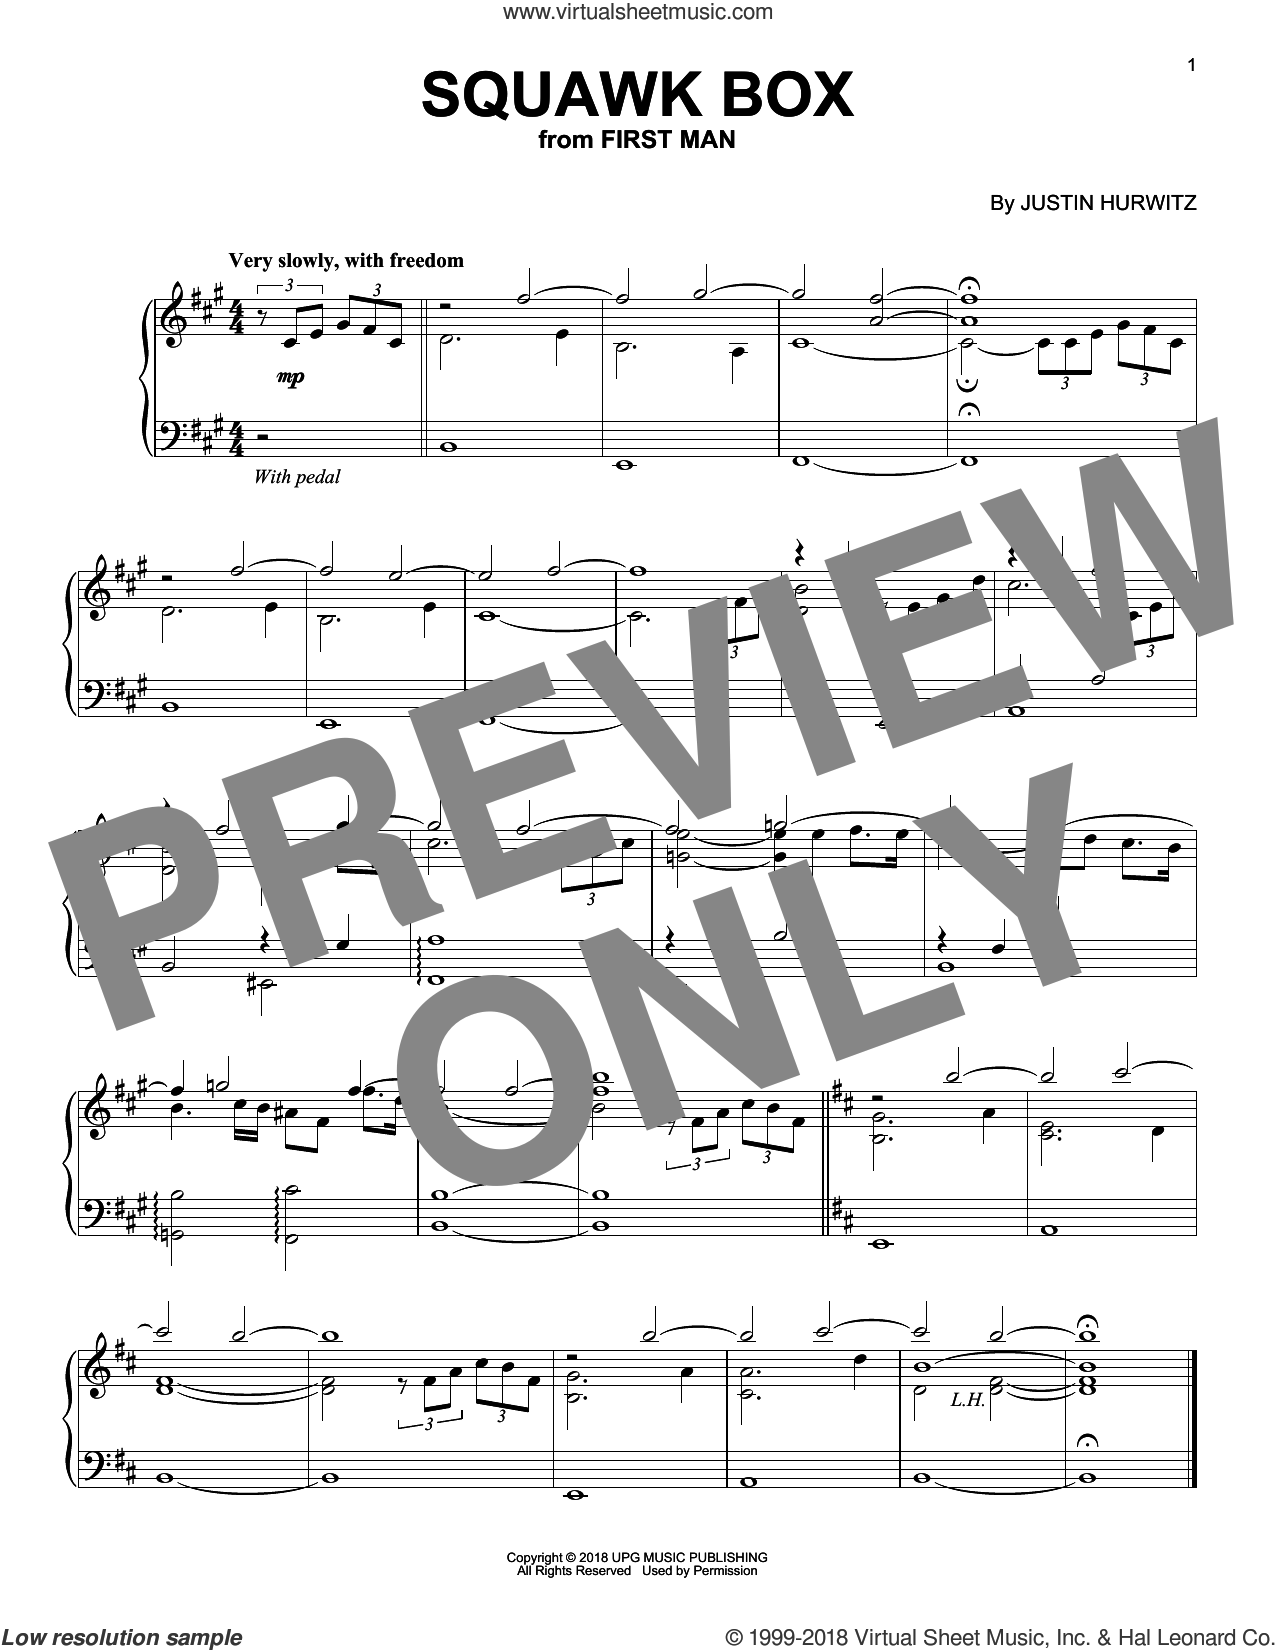 Squawk Box (from First Man) sheet music for piano solo by Justin Hurwitz, intermediate skill level